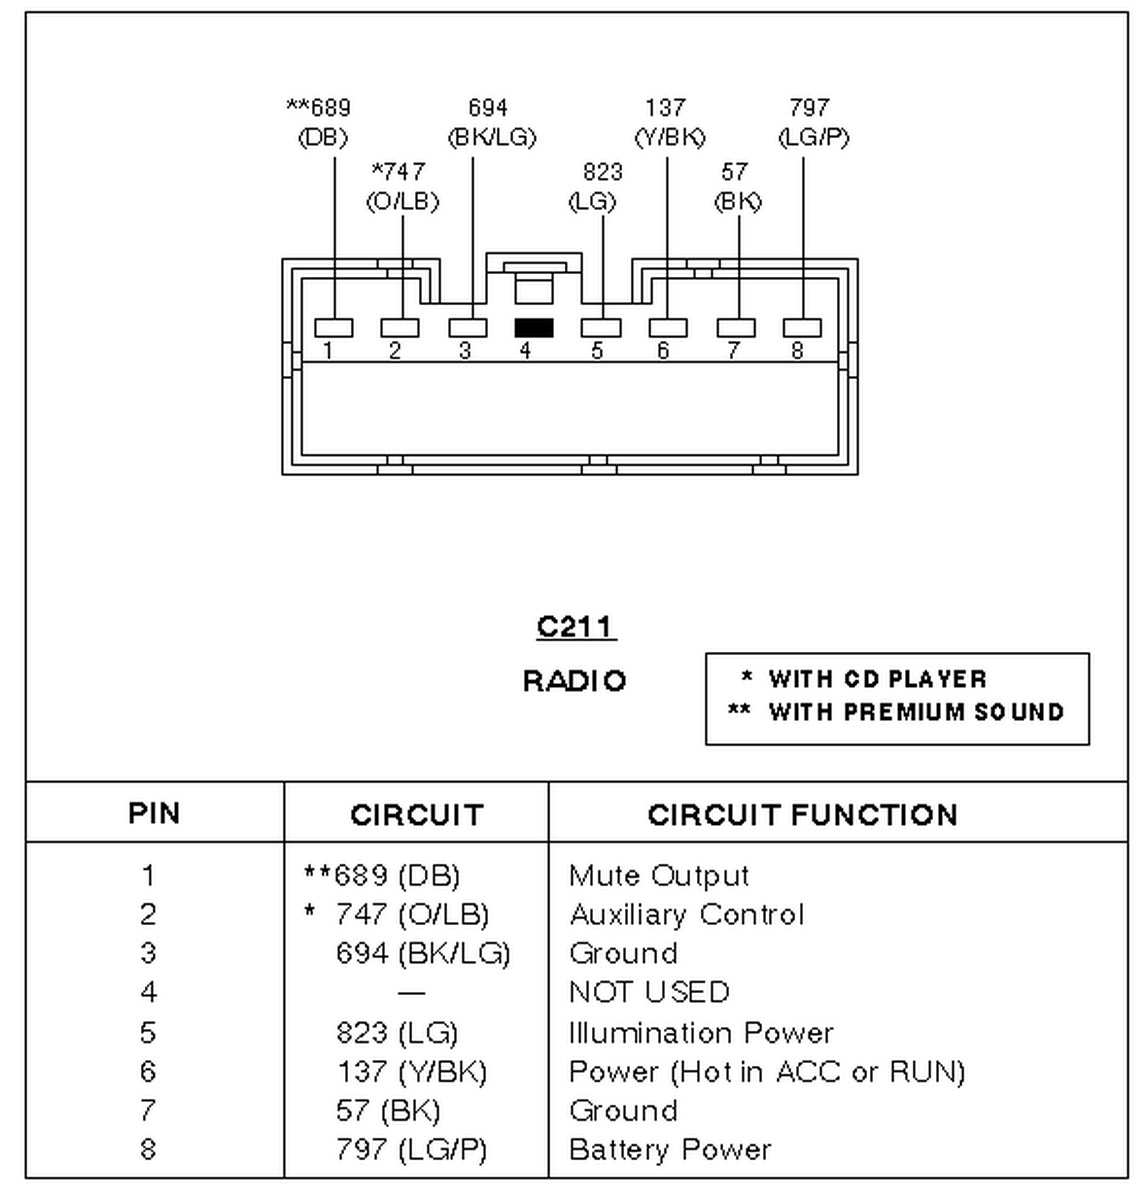 2011 ford escape radio wiring diagram | free wiring diagram 2003 ford explorer radio wiring 99 ford explorer radio wiring diagram